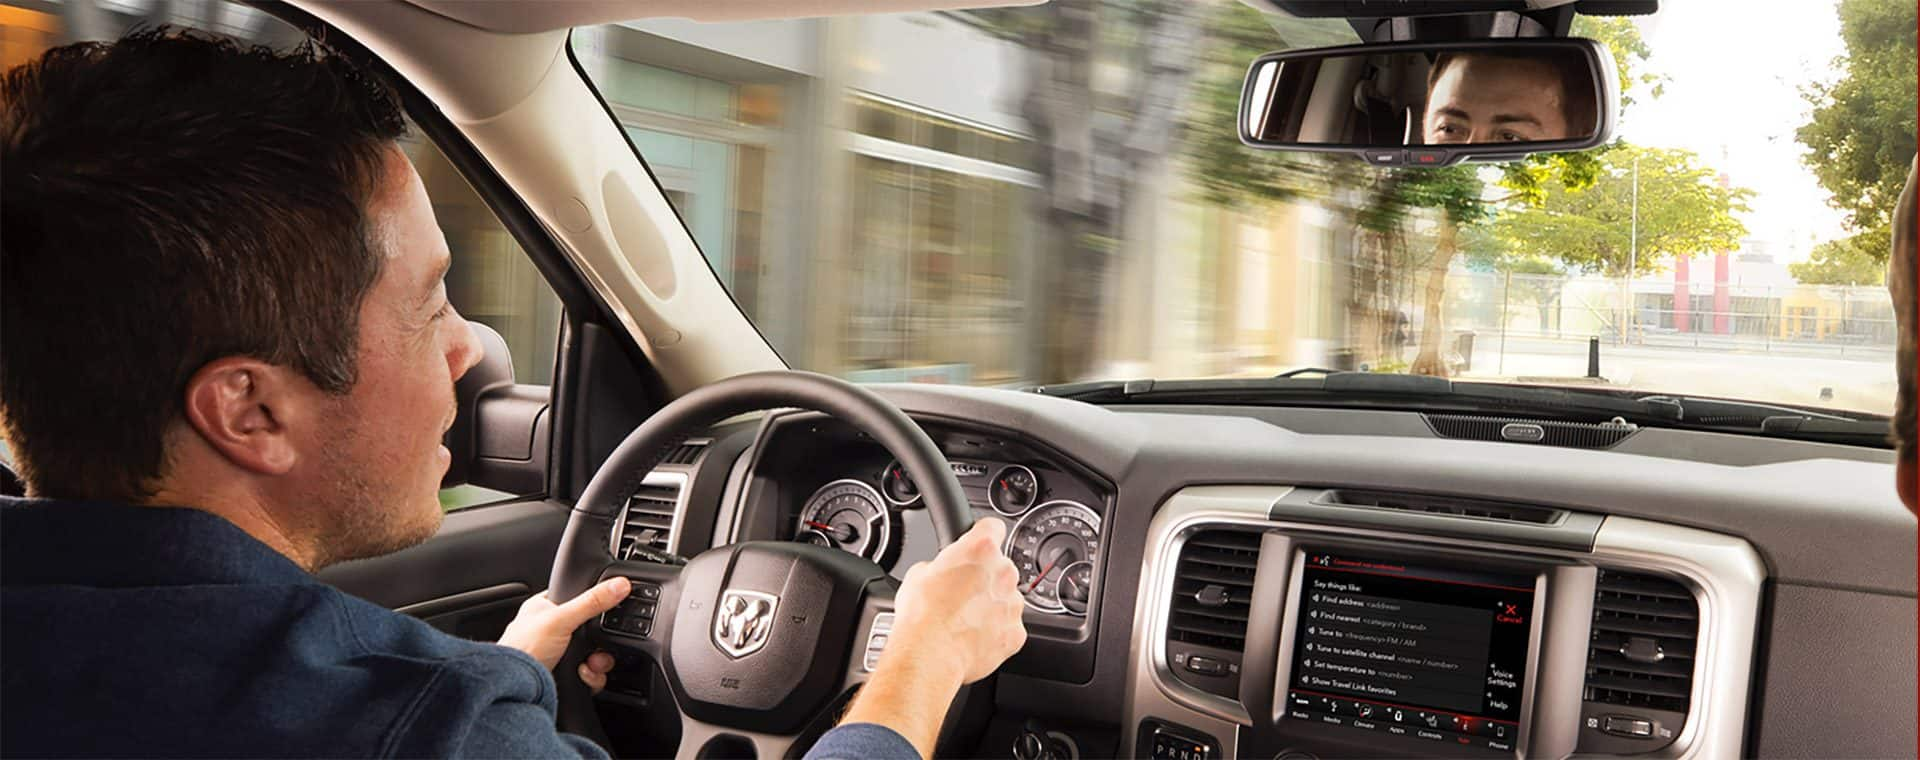 Speak your mind. Stay in control of your Ram Brand vehicle with Voice Command. Now you can access your Uconnect system without taking your hands off the wheel or your eyes off the road.